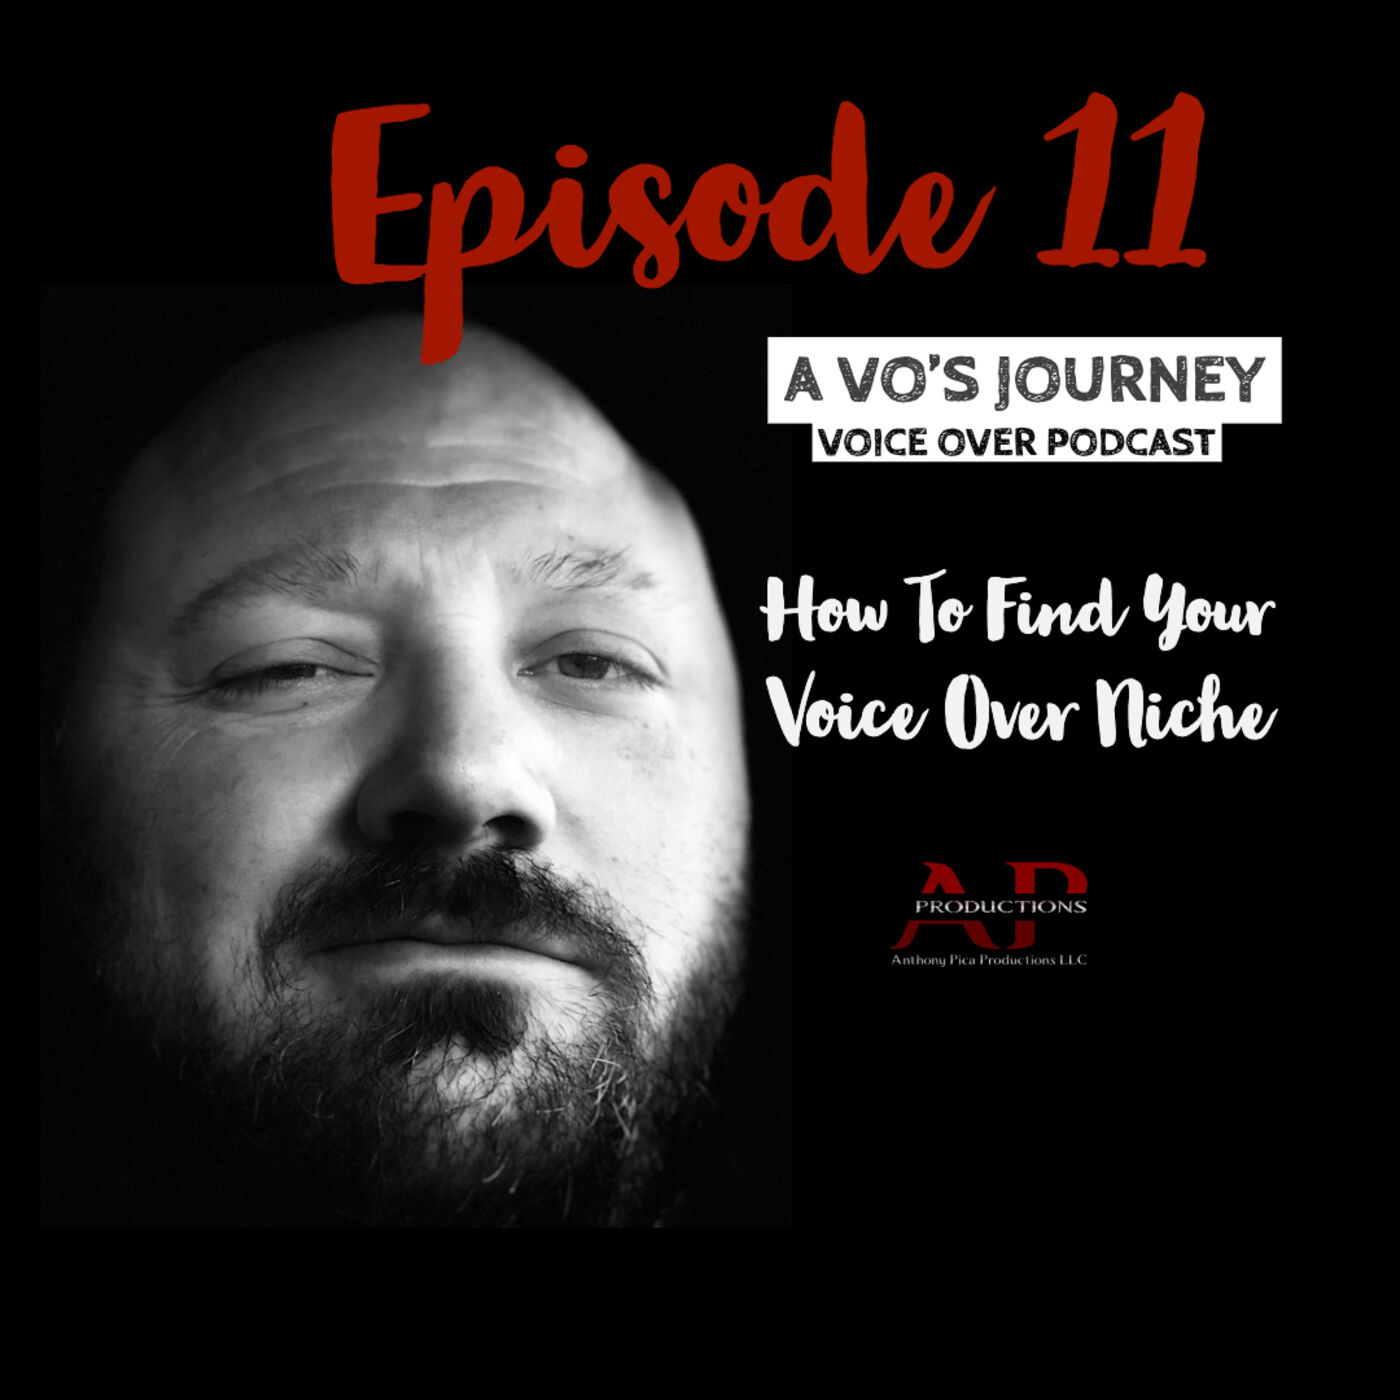 Ep. 11: How To Find Your Voice Over Niche